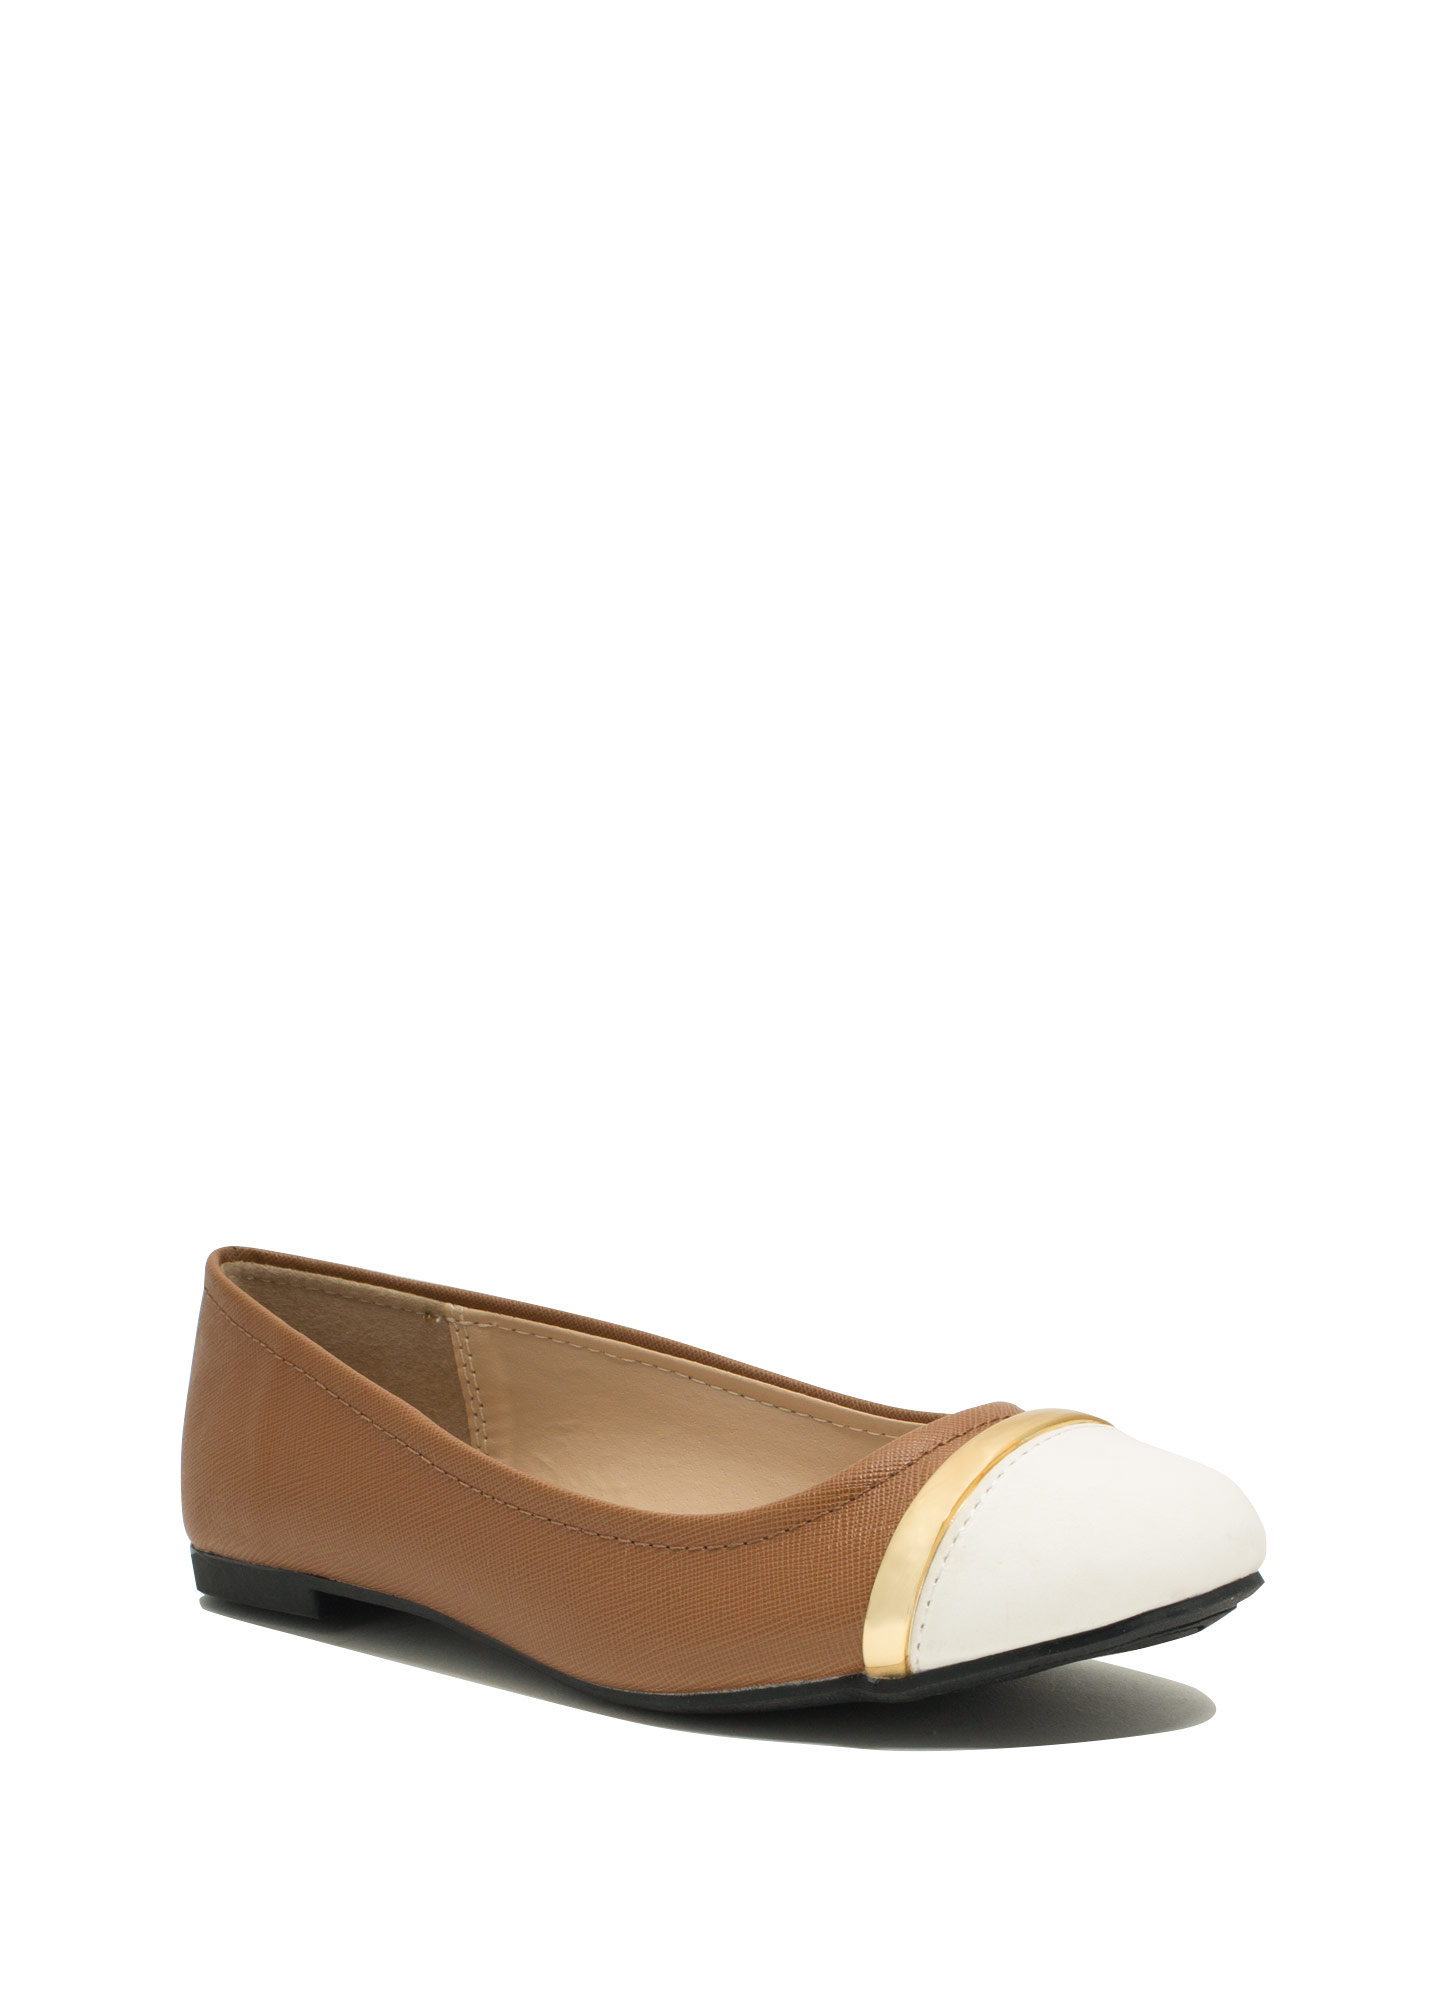 Stay In Line Cap Toe Ballet Flats CAMEL